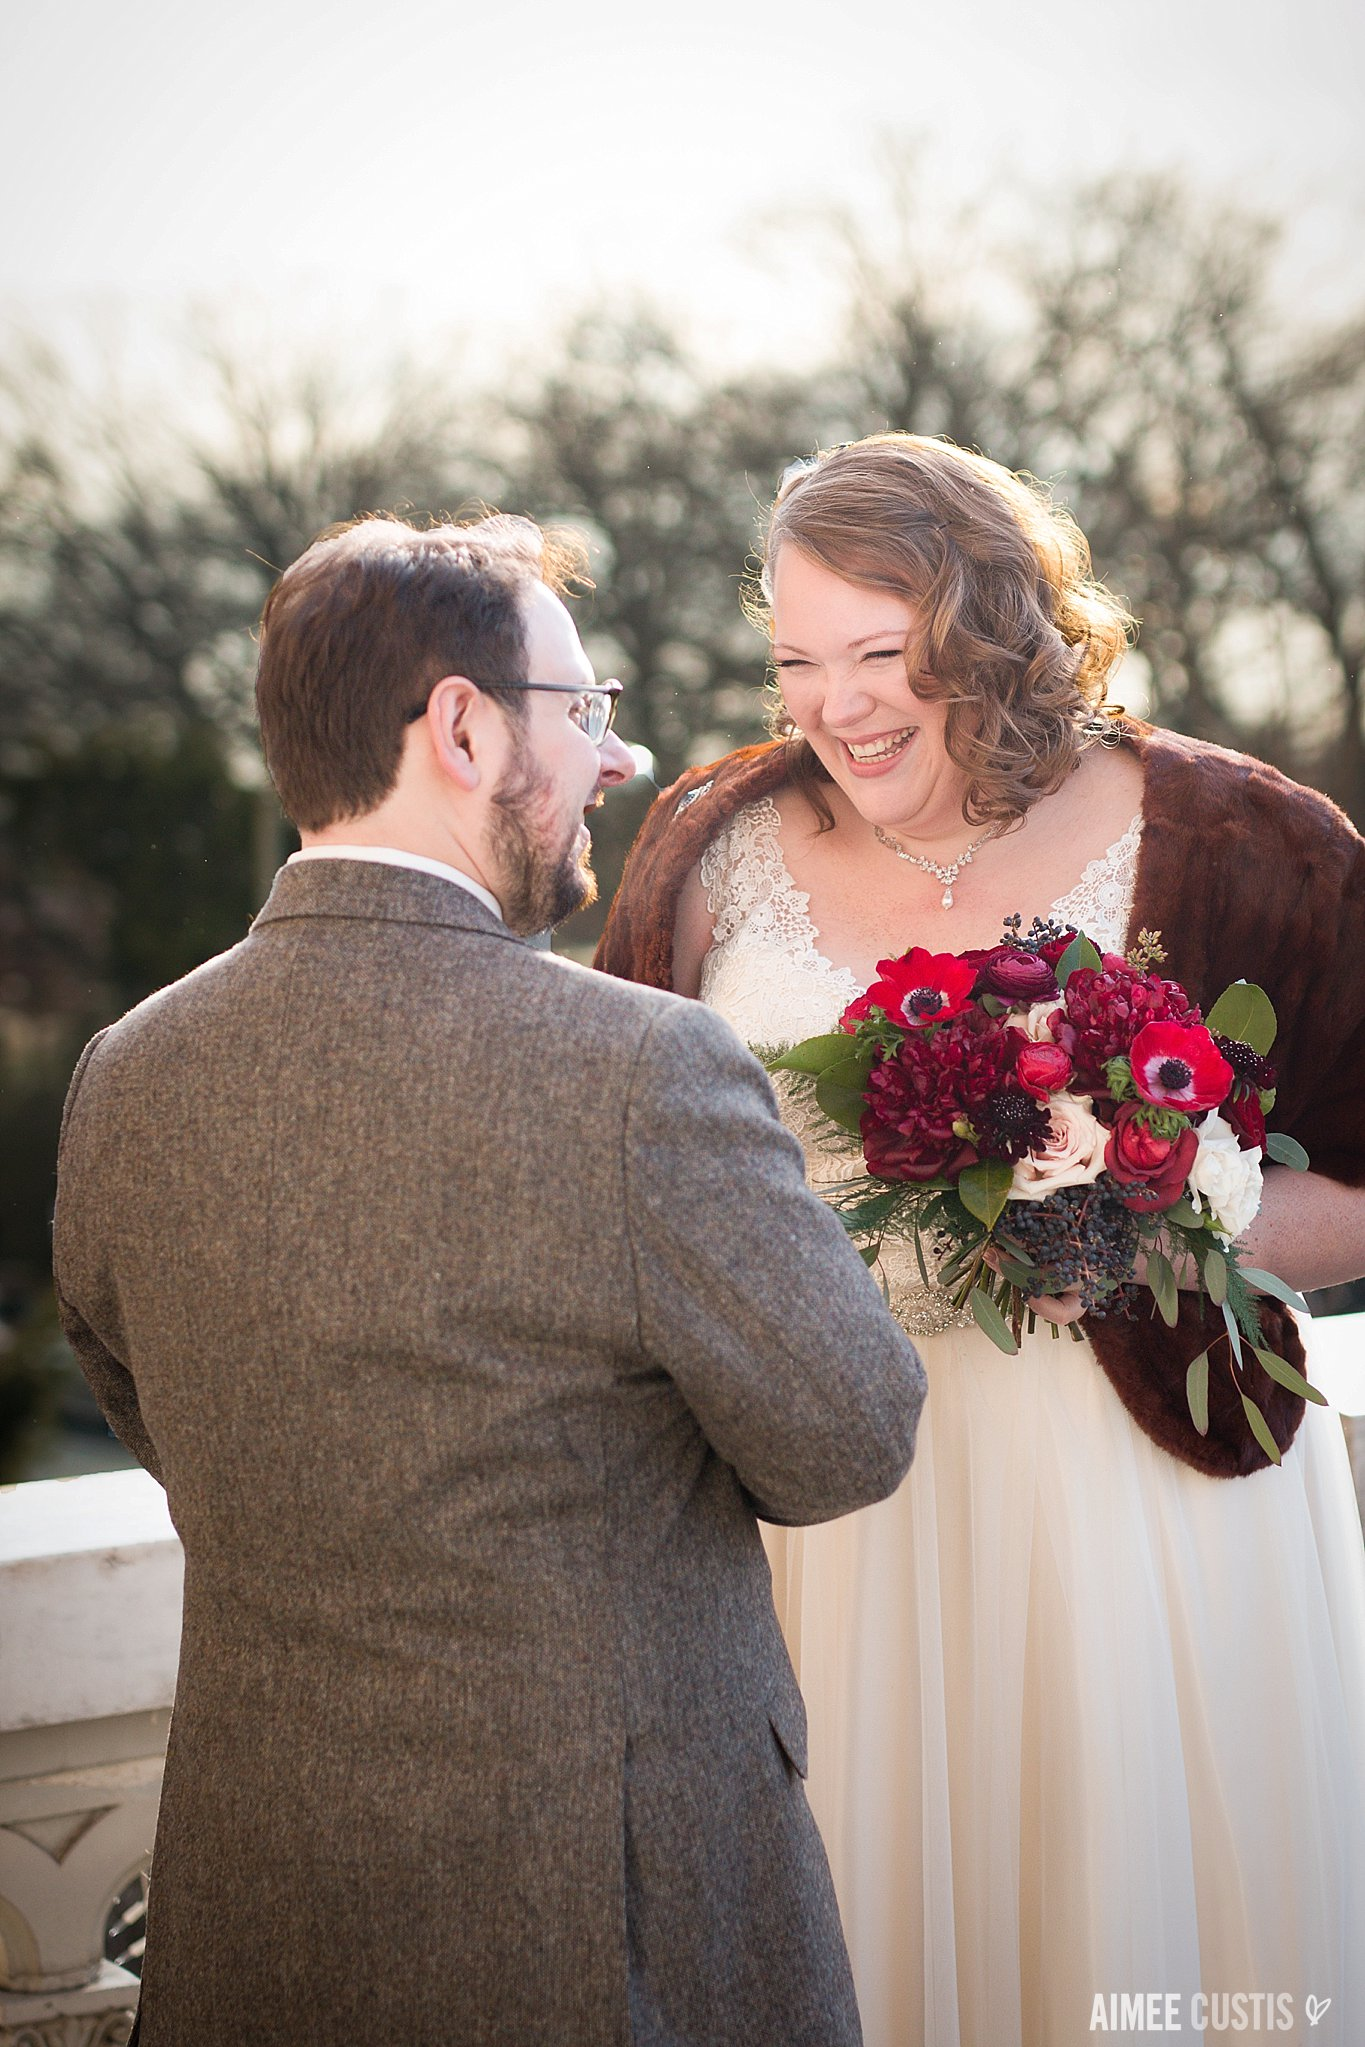 Romantic winter District of Columbia wedding at Josephine Butler Parks